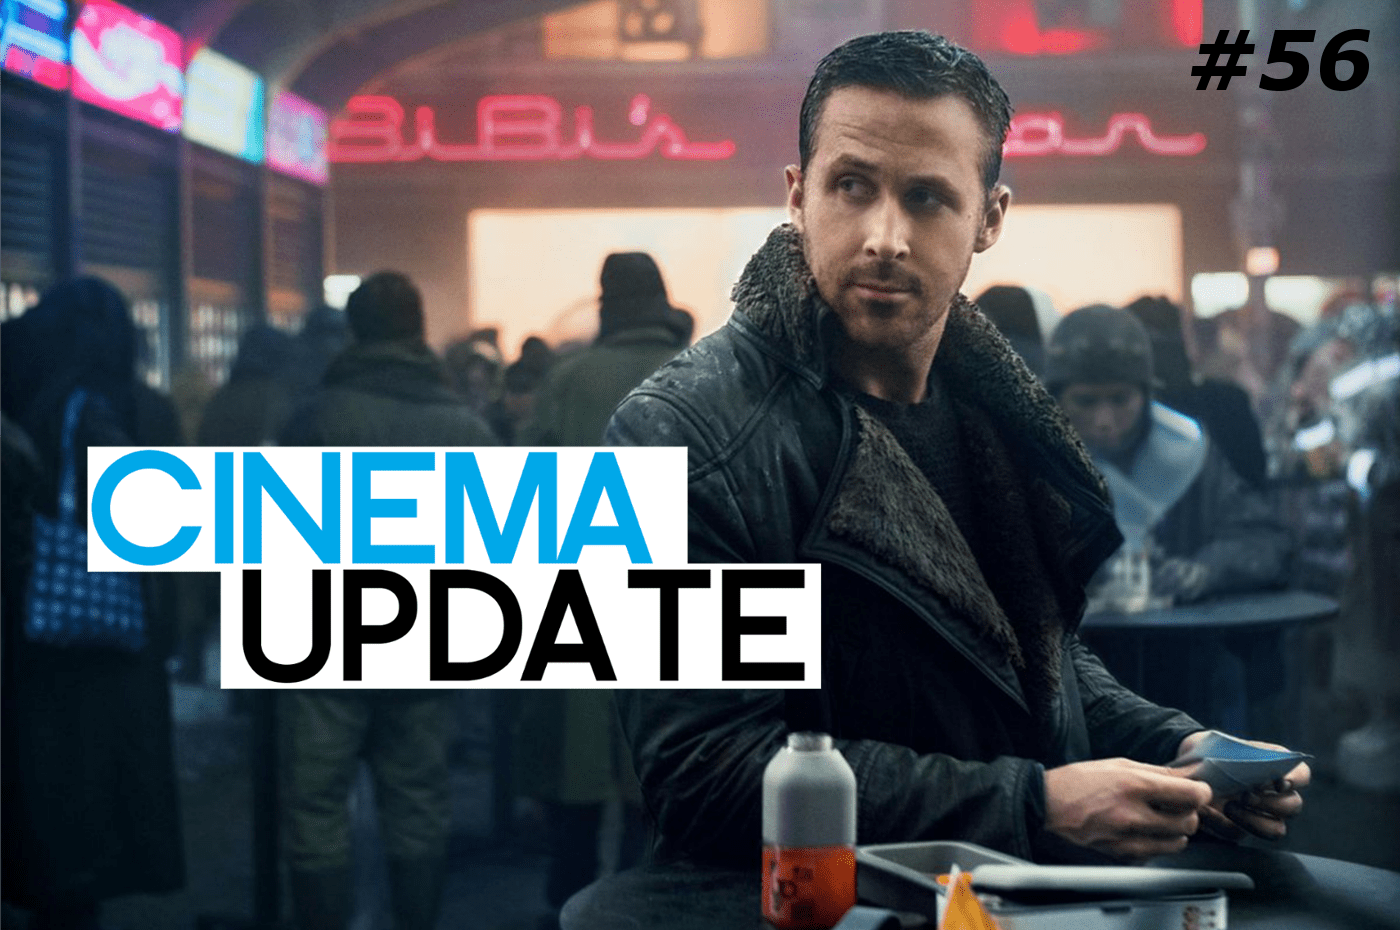 Cinema Update #56 – Hellboy Reboot, Deadpool Serie, Facebook Shows & Blade Runner 2049